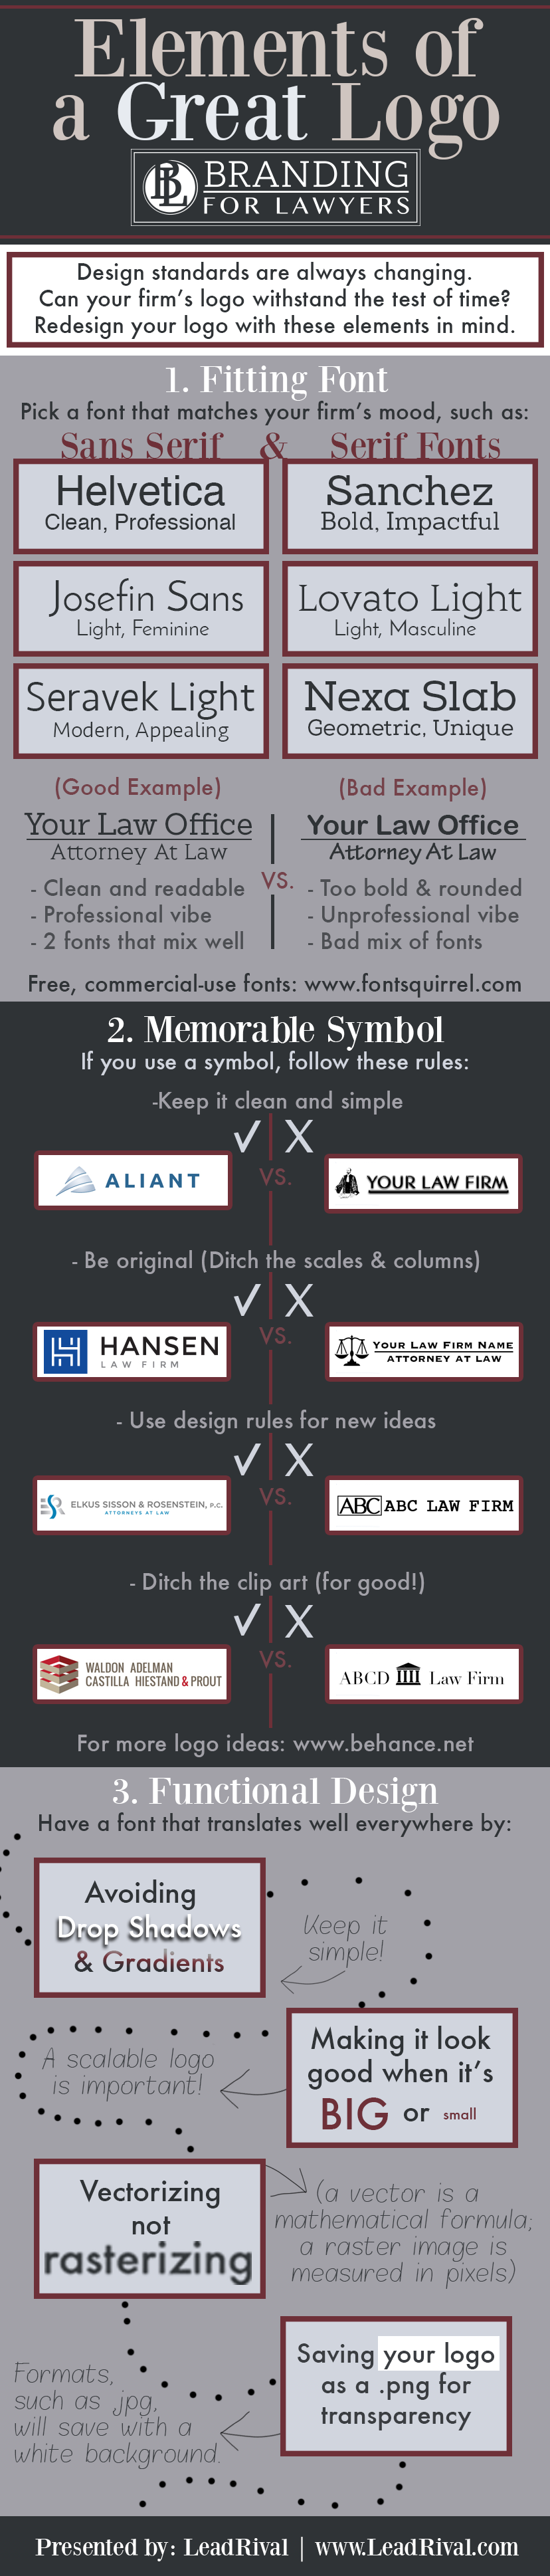 Elements of a Great Logo [Infographic]